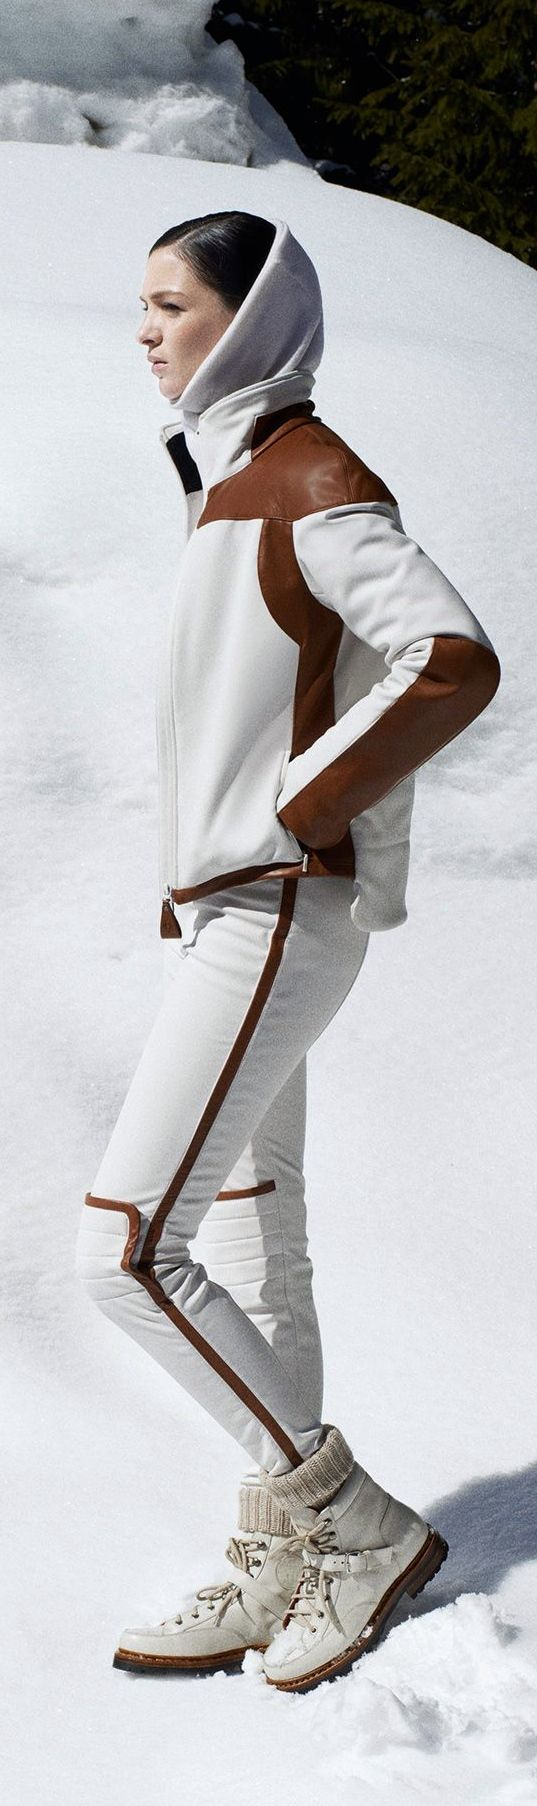 Hermes ski: Now this is what I'm talking about. Now, I want to go to Vail.